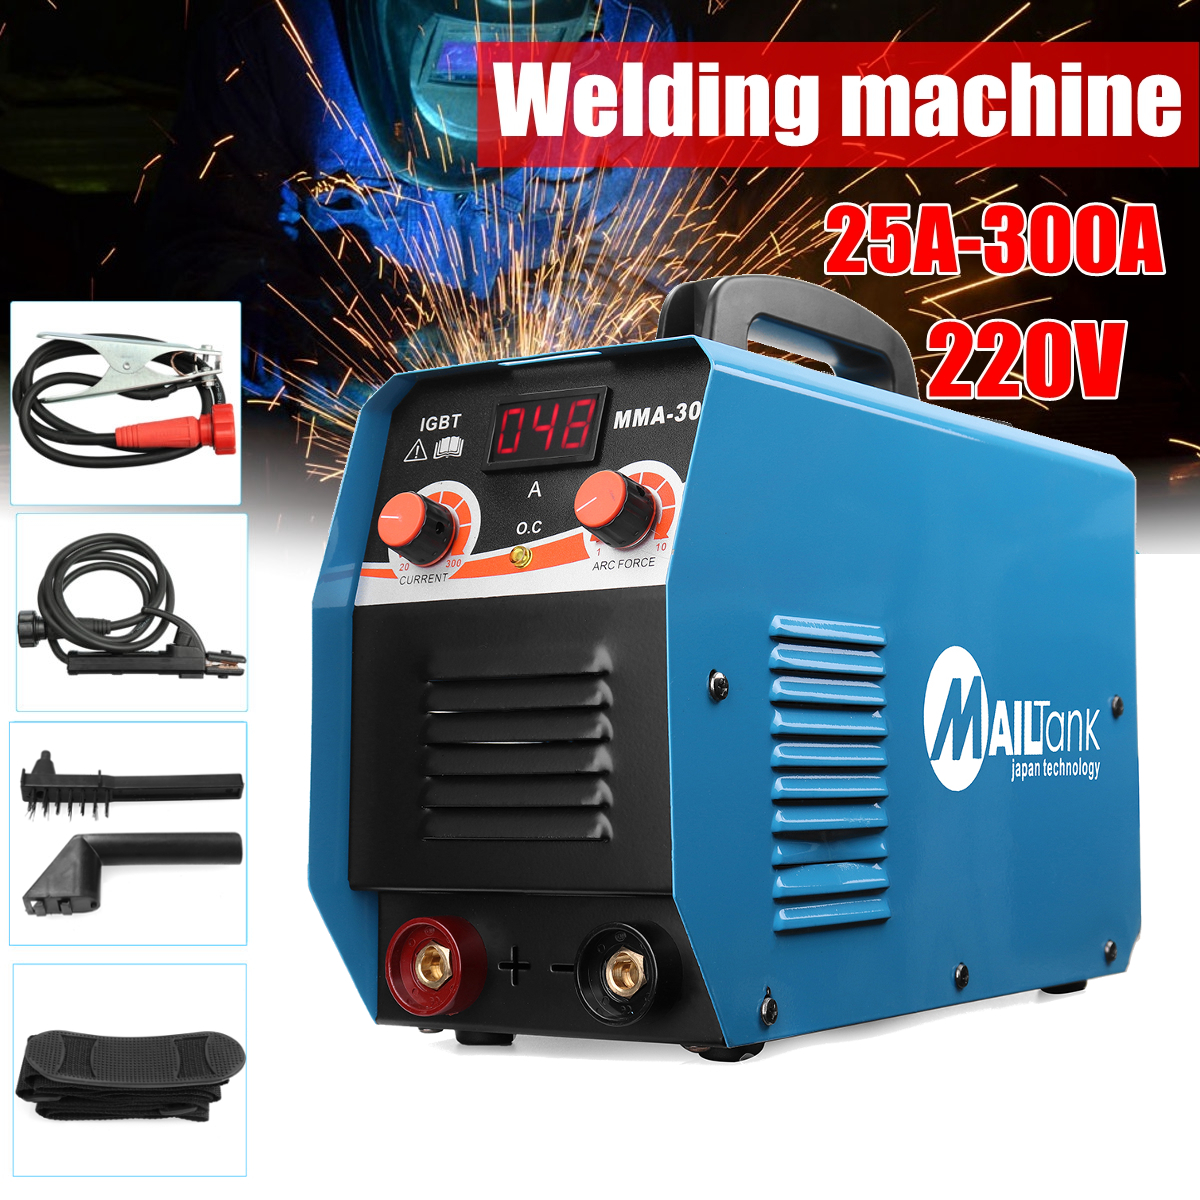 Welding 220V semiautomatic device: technical characteristics, reviews of manufacturers 12